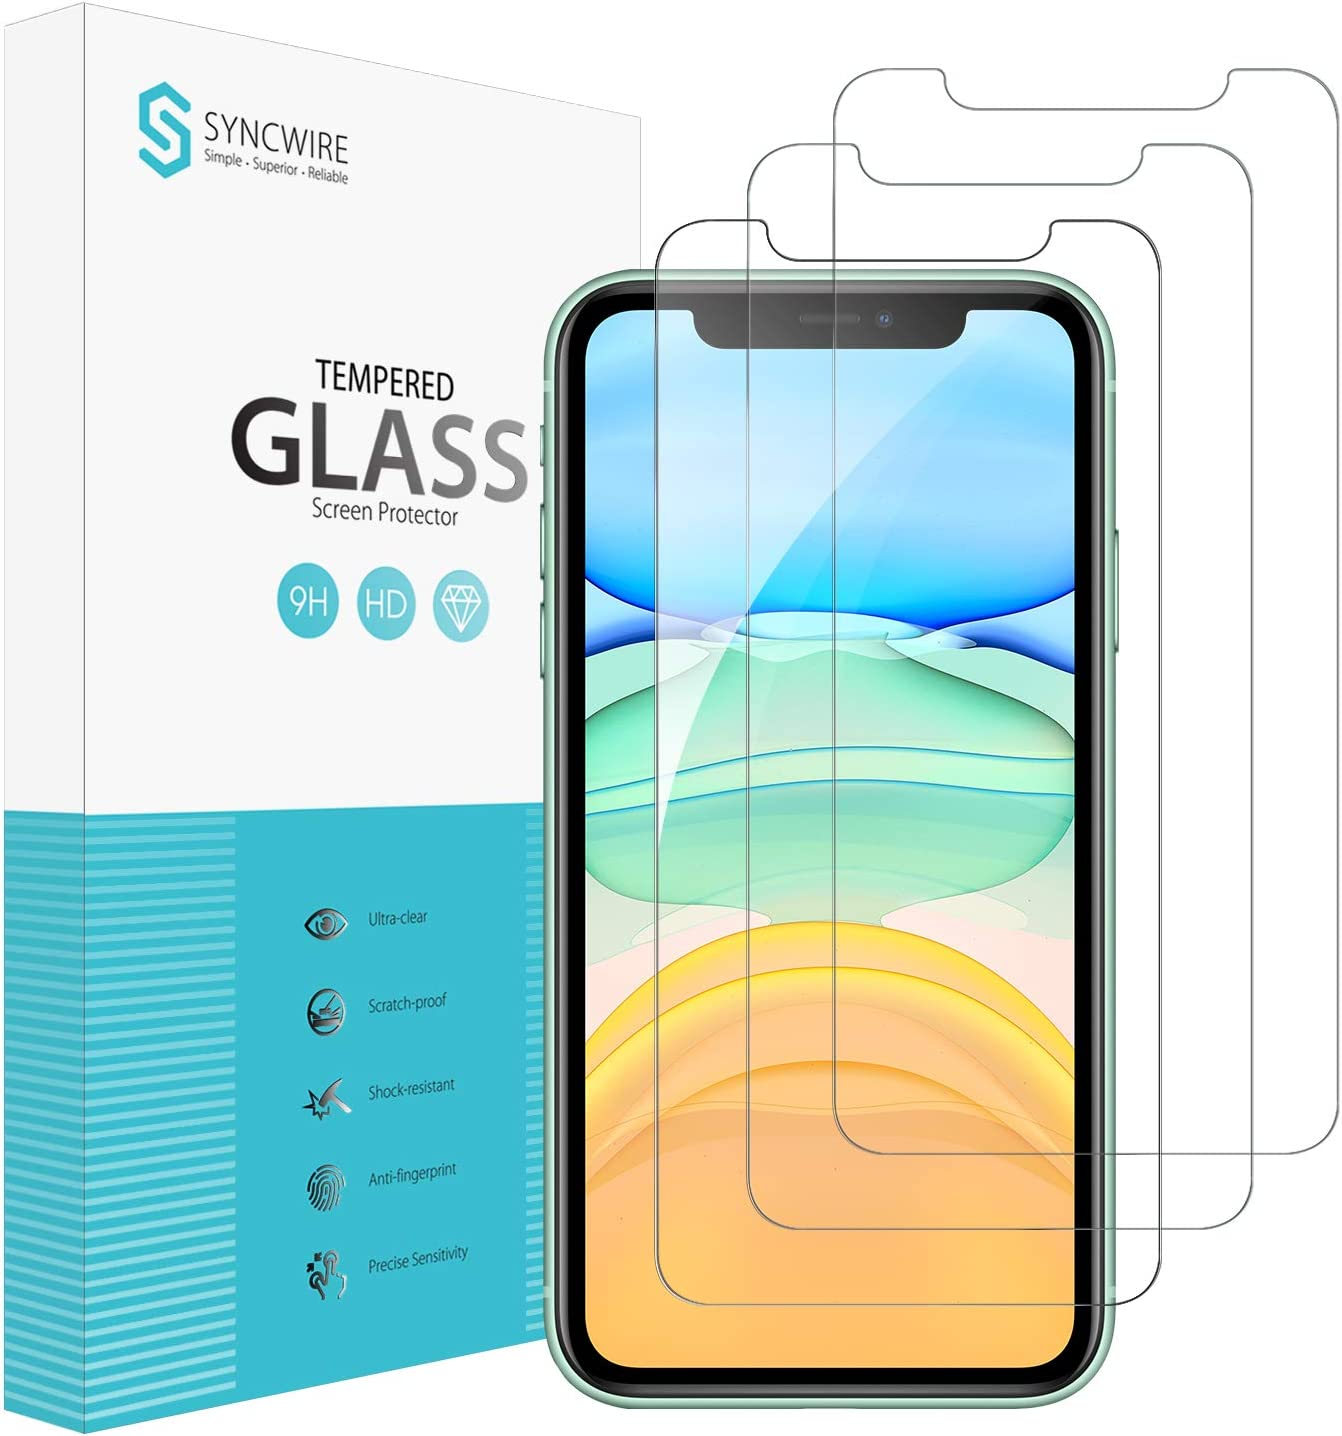 Syncwire Screen Protector for iPhone 11, iPhone XR (3-Pack), Anti-Fingerprint Tempered Glass Screen Protector (9H Hardness, 6X Stronger, Installation Frame, Bubble Free) [Not Edge to Edge]